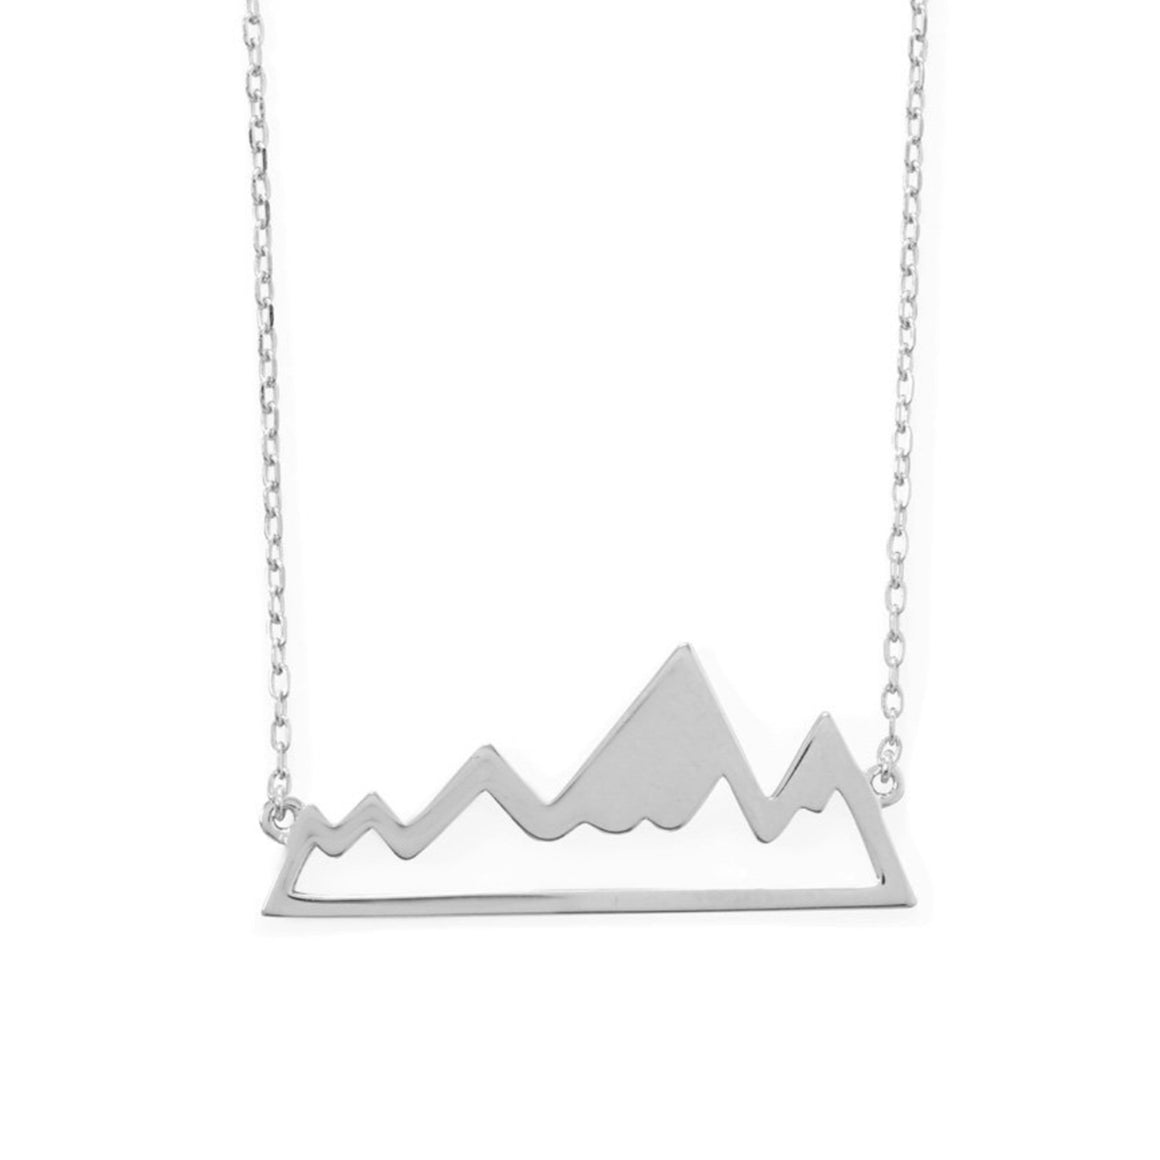 Explore the Mountains Necklace - Pretty Collected